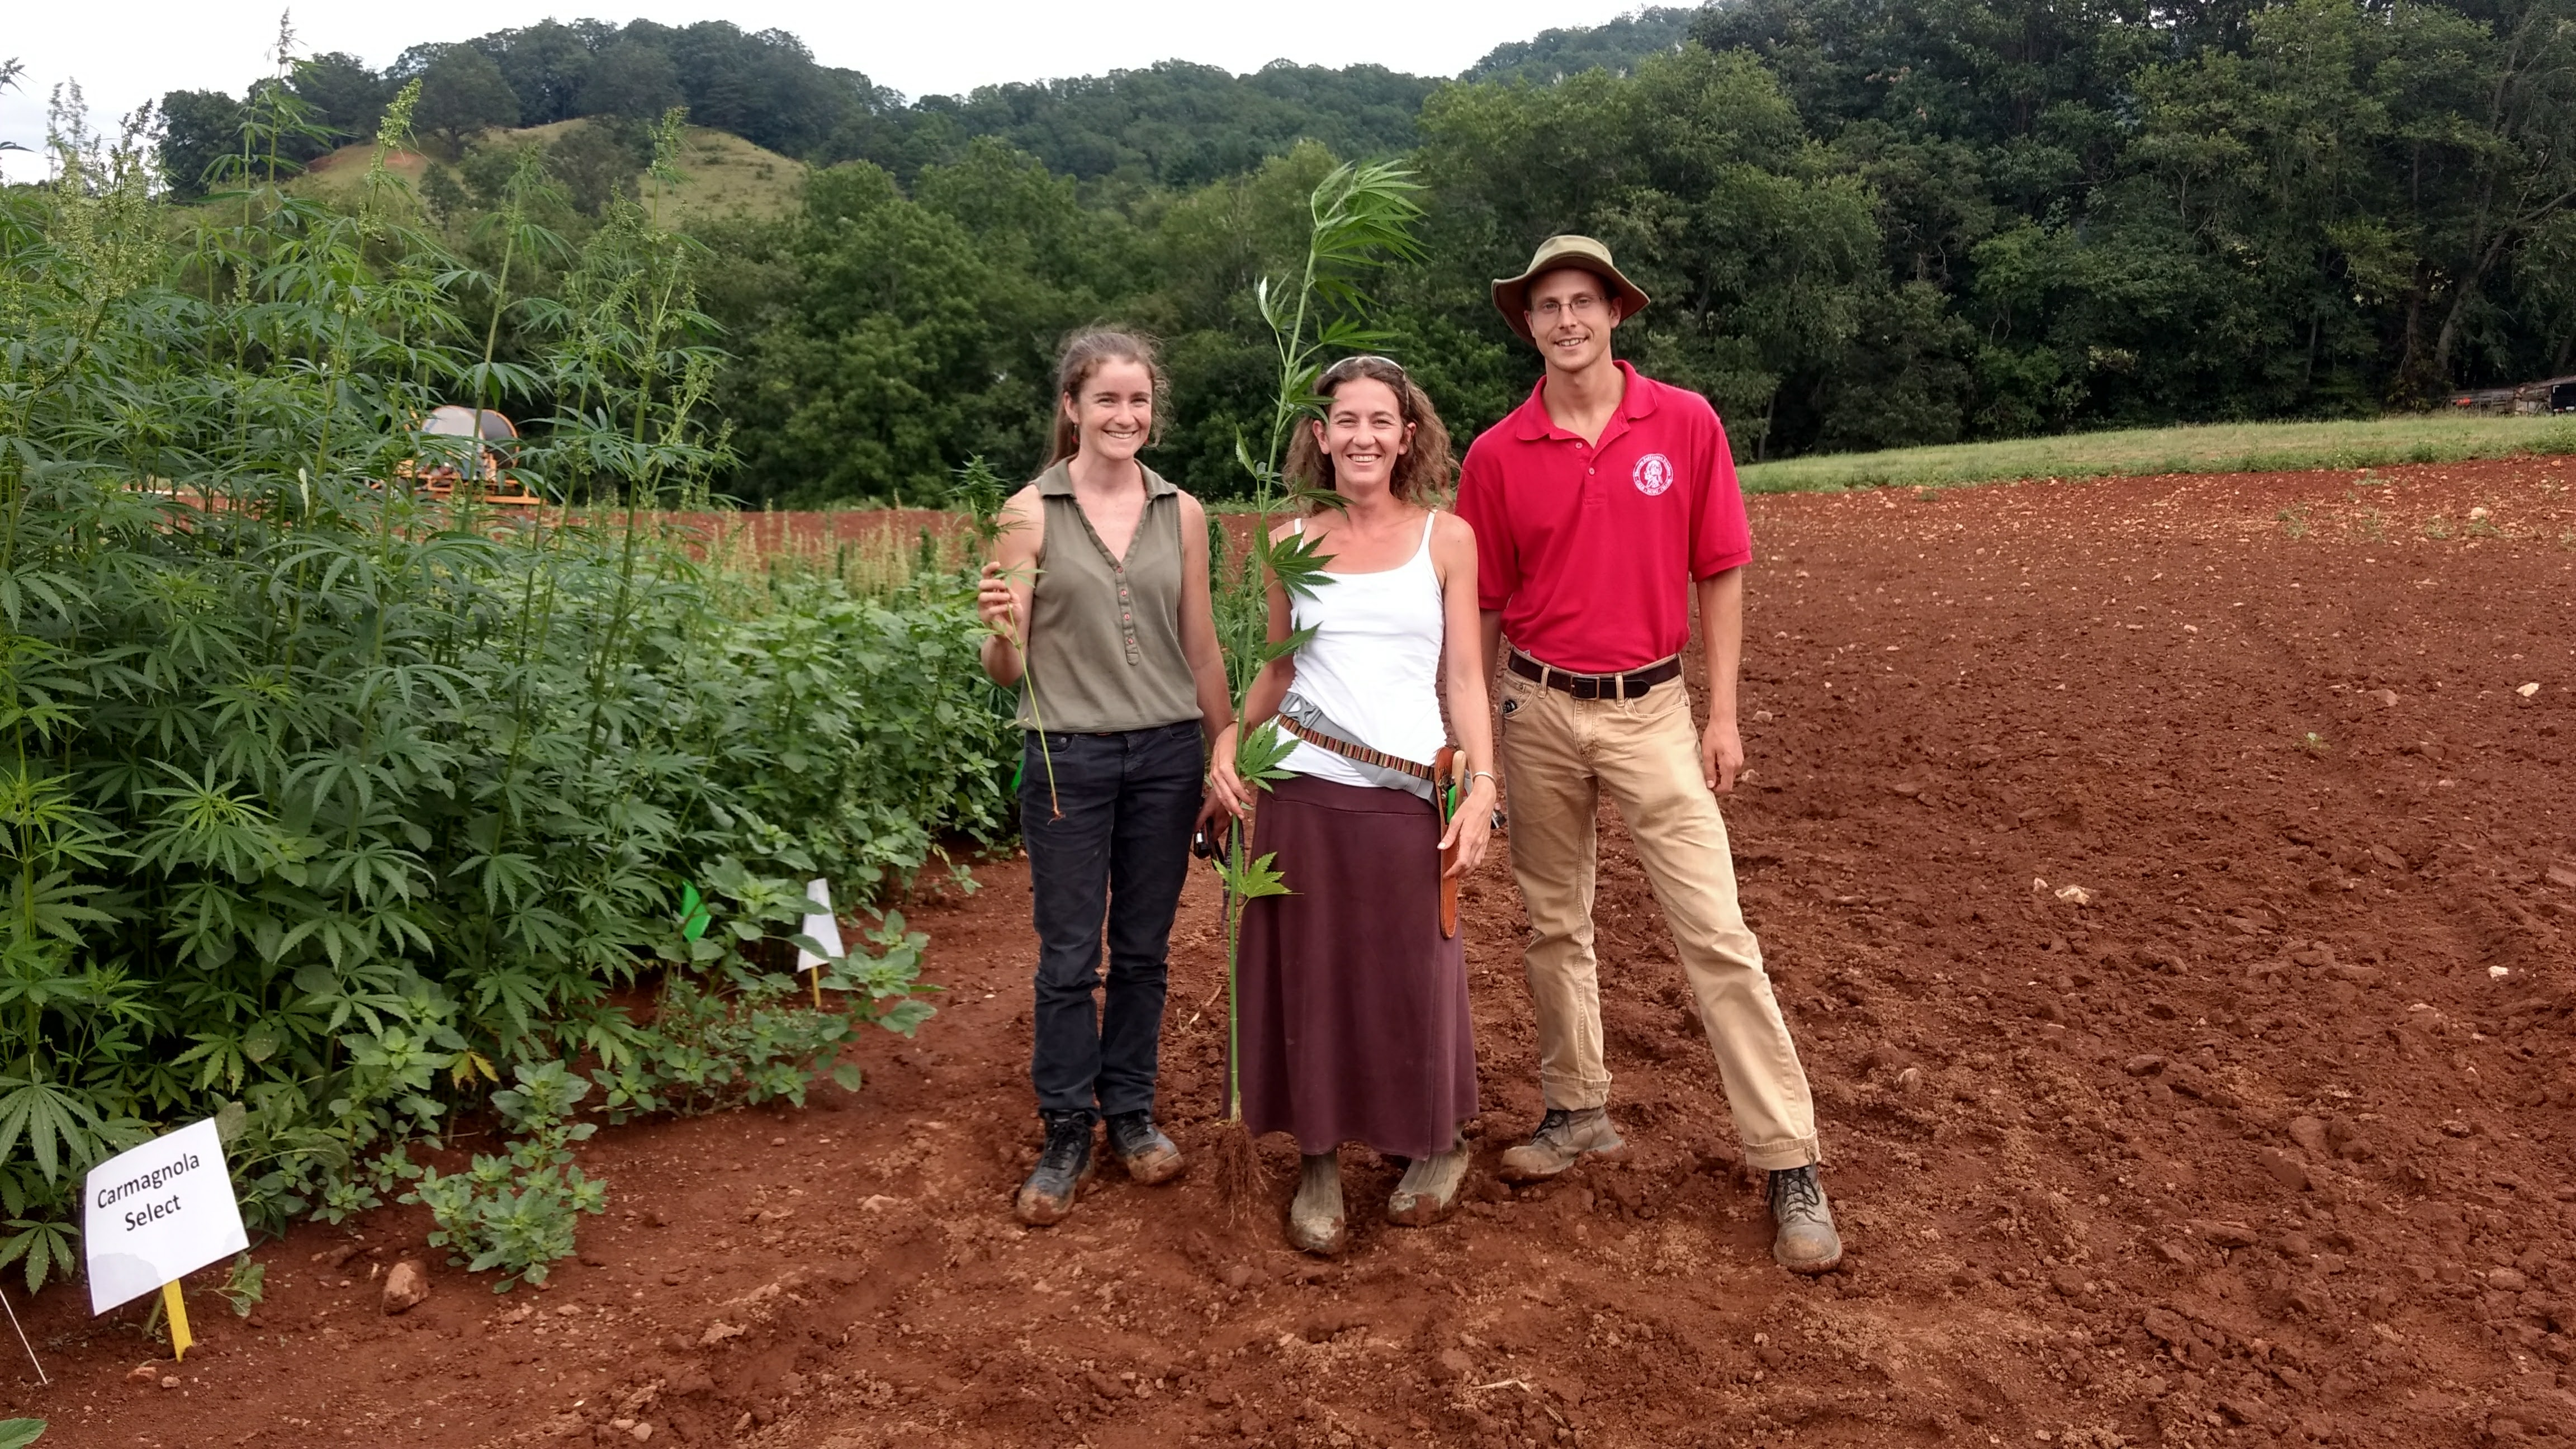 New Pictures From the NCSU Industrial Hemp Trials in Western